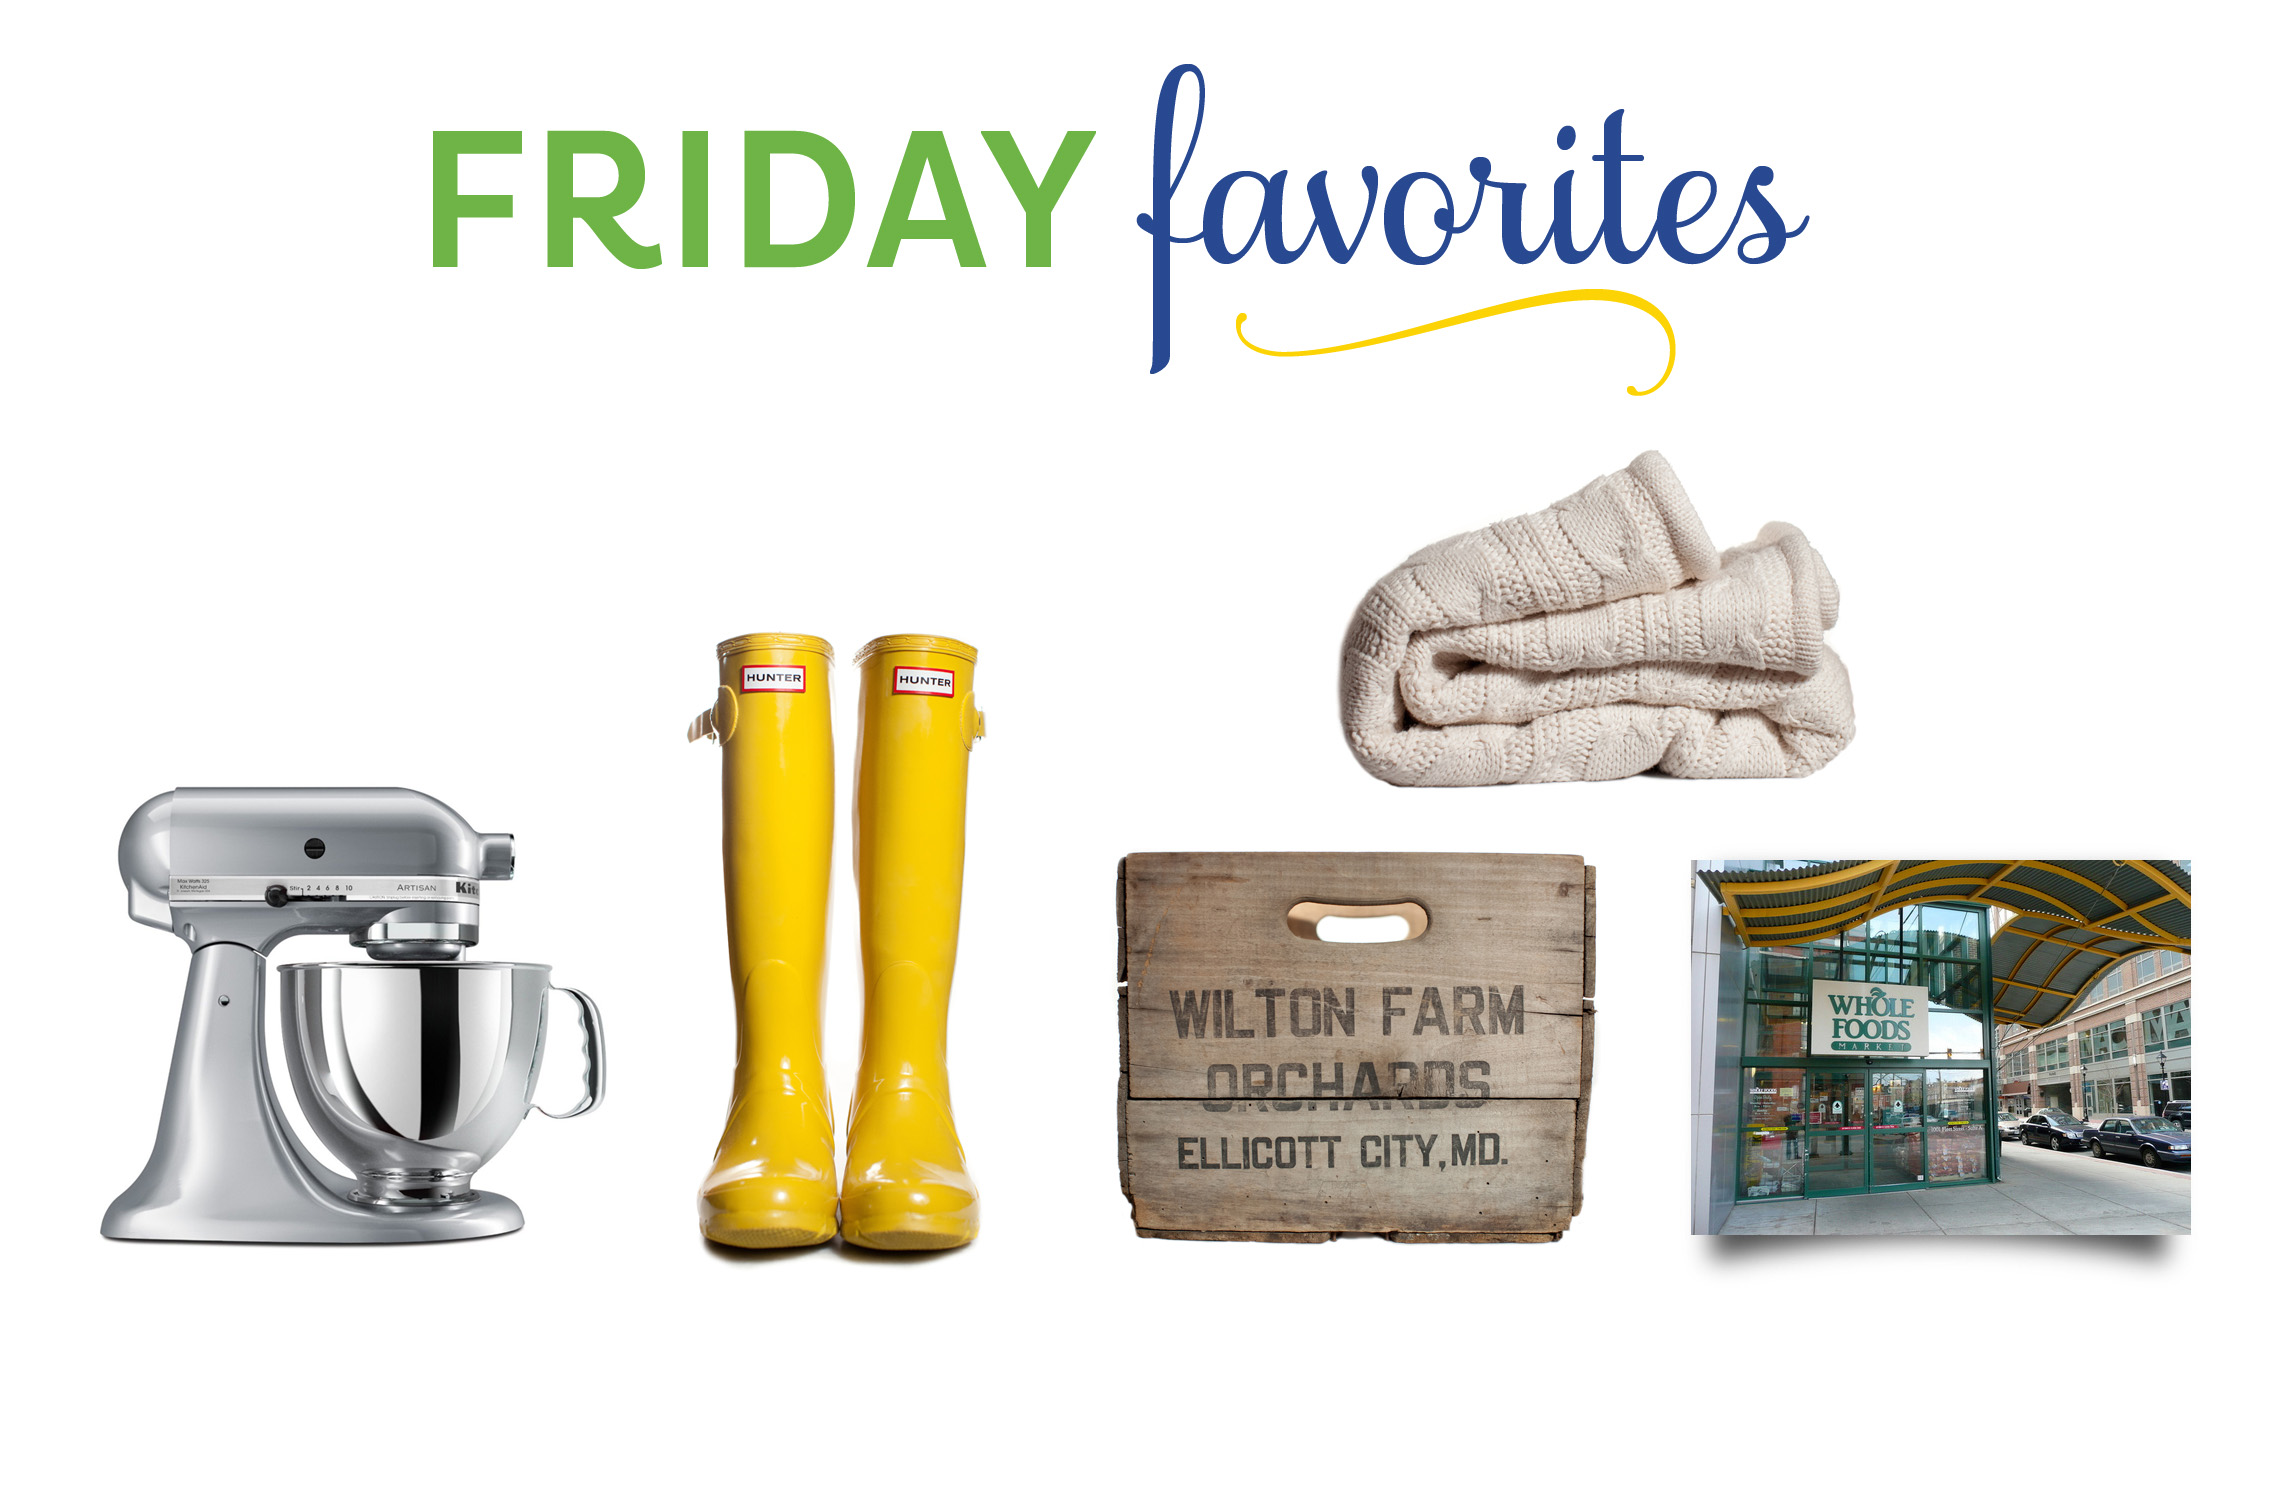 Friday-Favorites-Things-That-Make-Our-Lives-More-Amazing